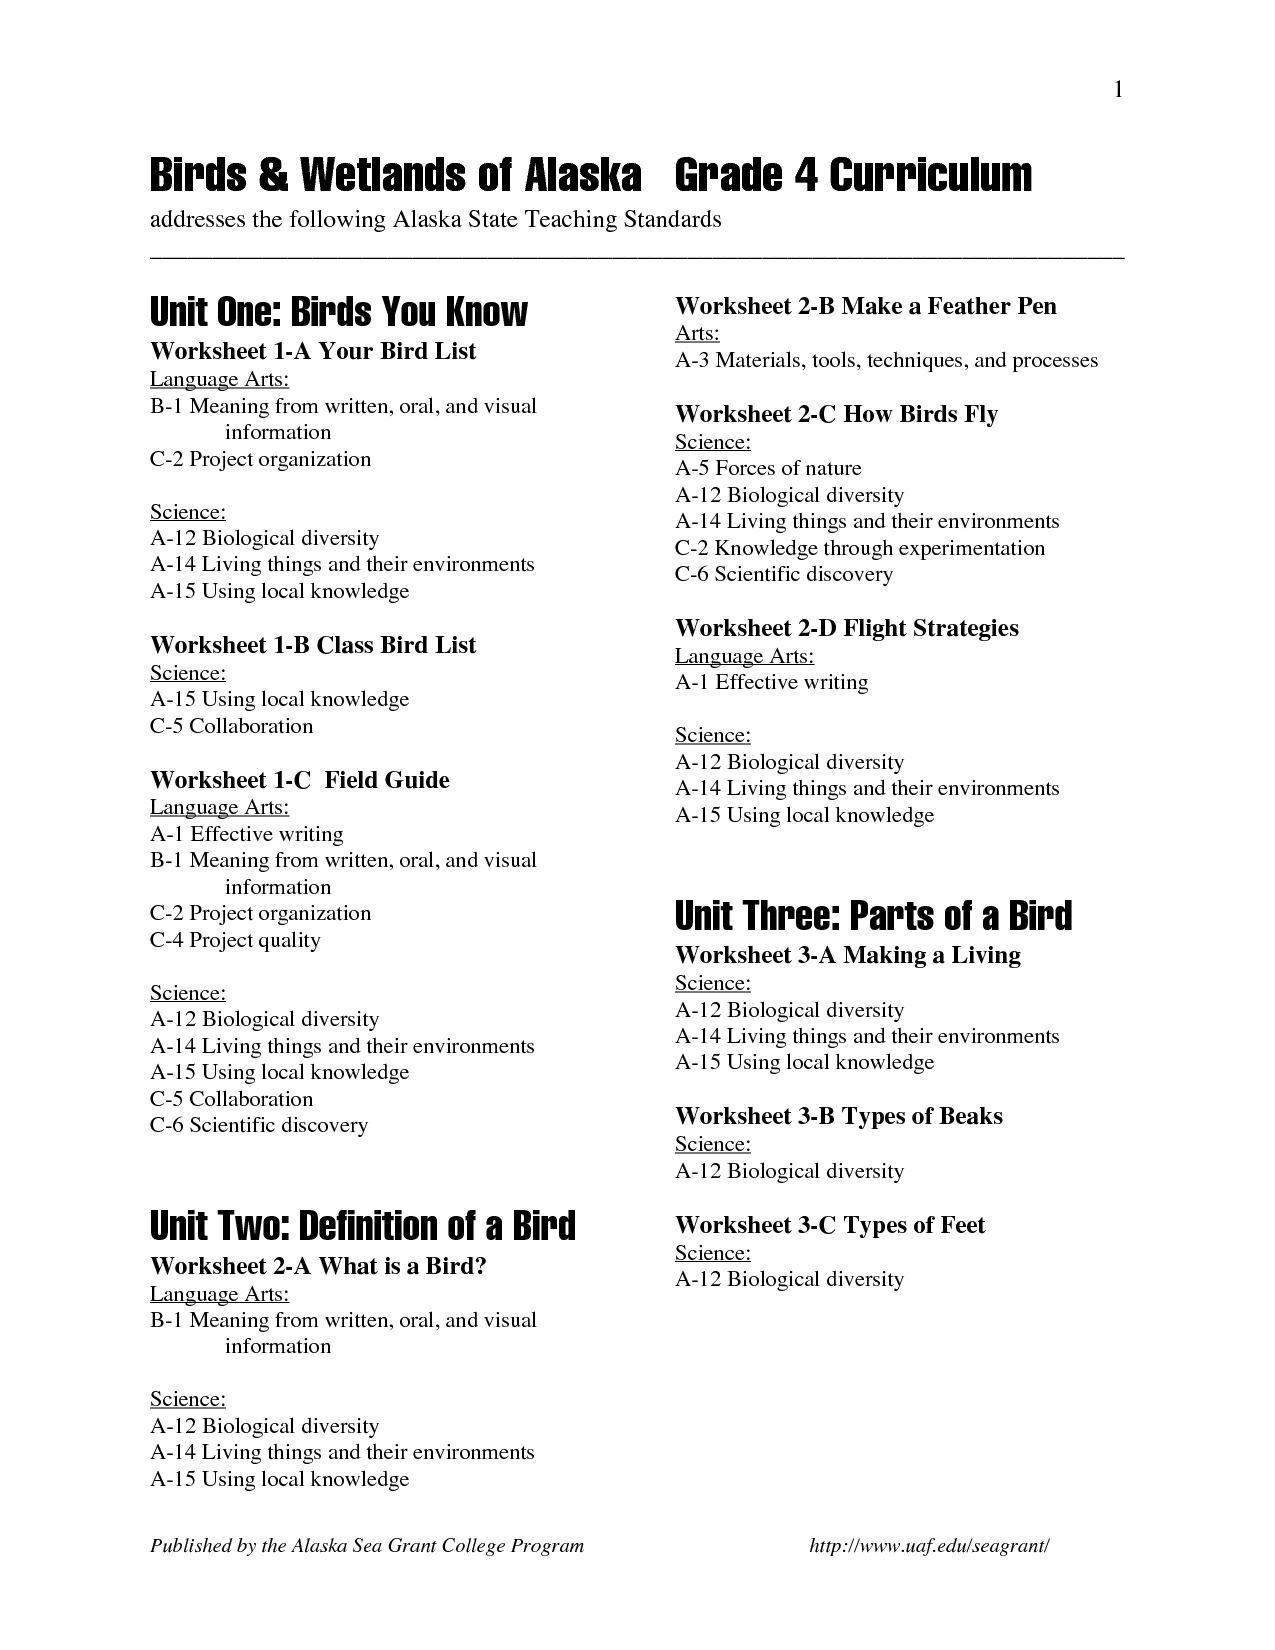 17 Best Images Of Science Tools Worksheet